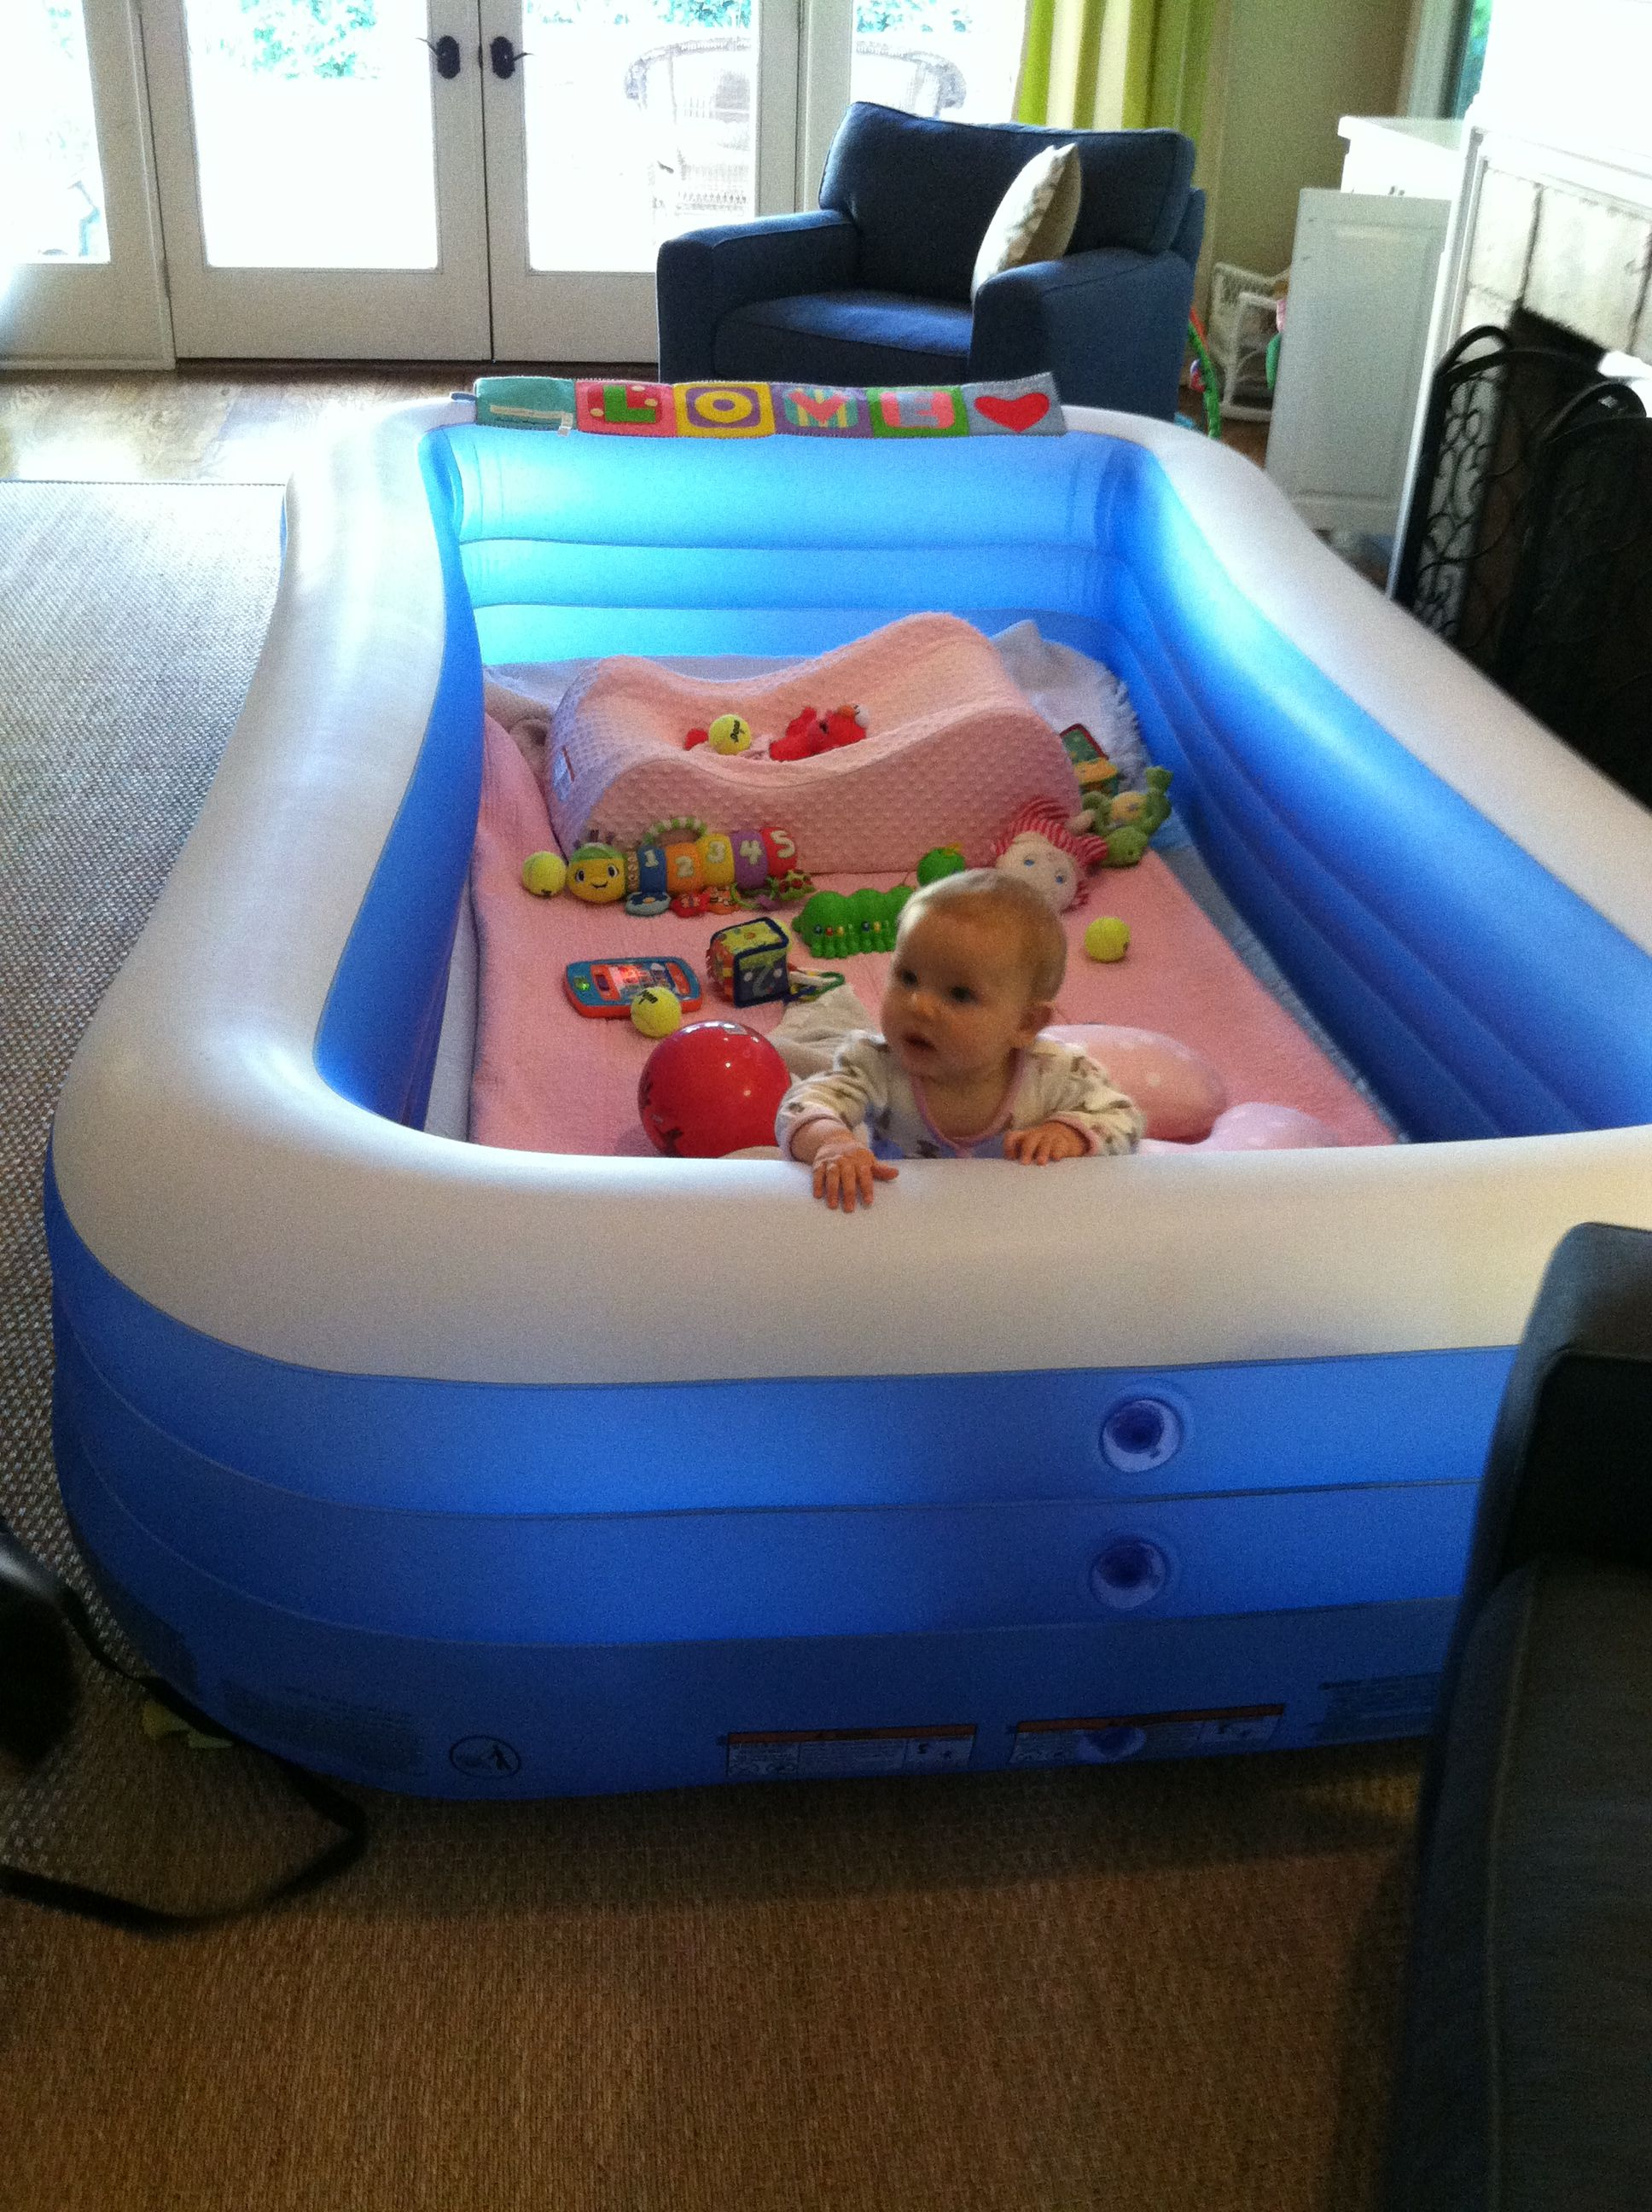 Pin By Justina Beckett On Kids Baby Play Areas Baby Pool Baby Play